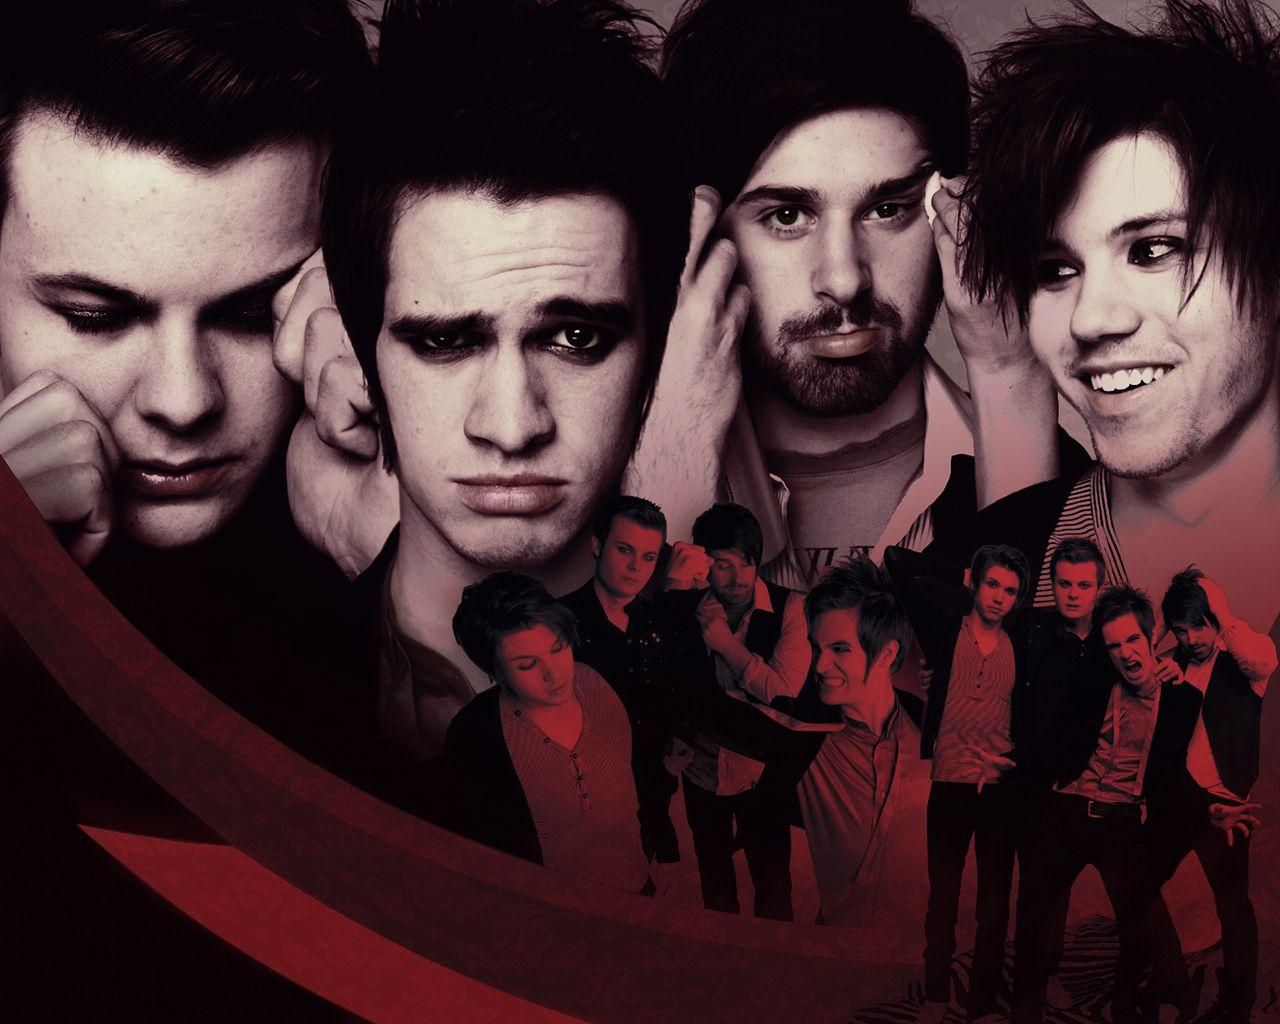 Panic at The Disco Wallpapers - WallpaperSafari